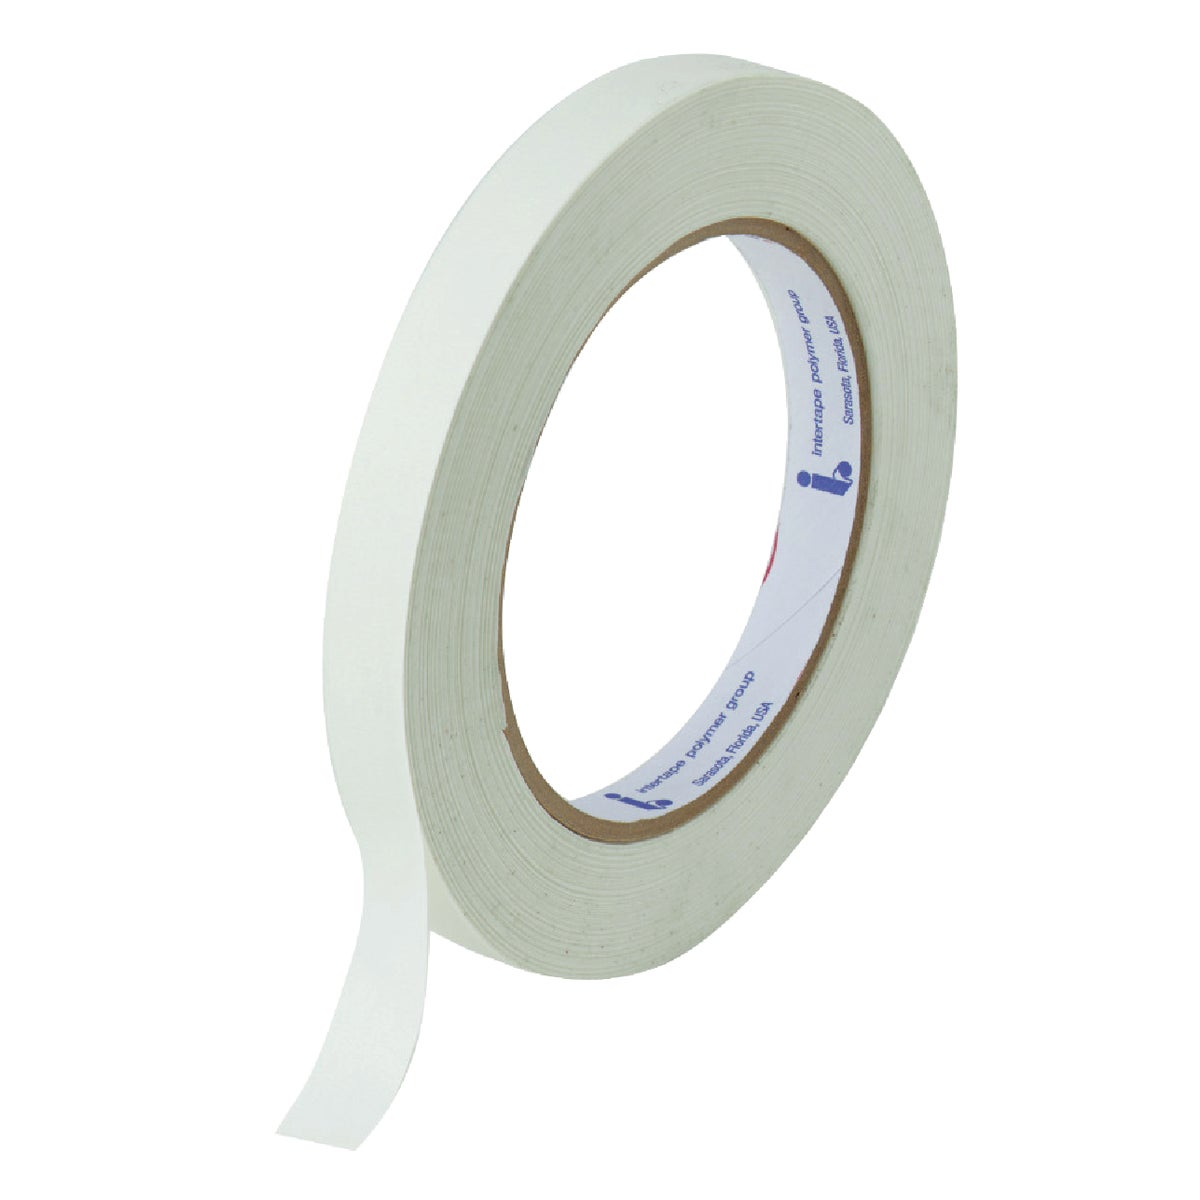 12MM G/P MASKING TAPE - 70787 by Intertape Polymer